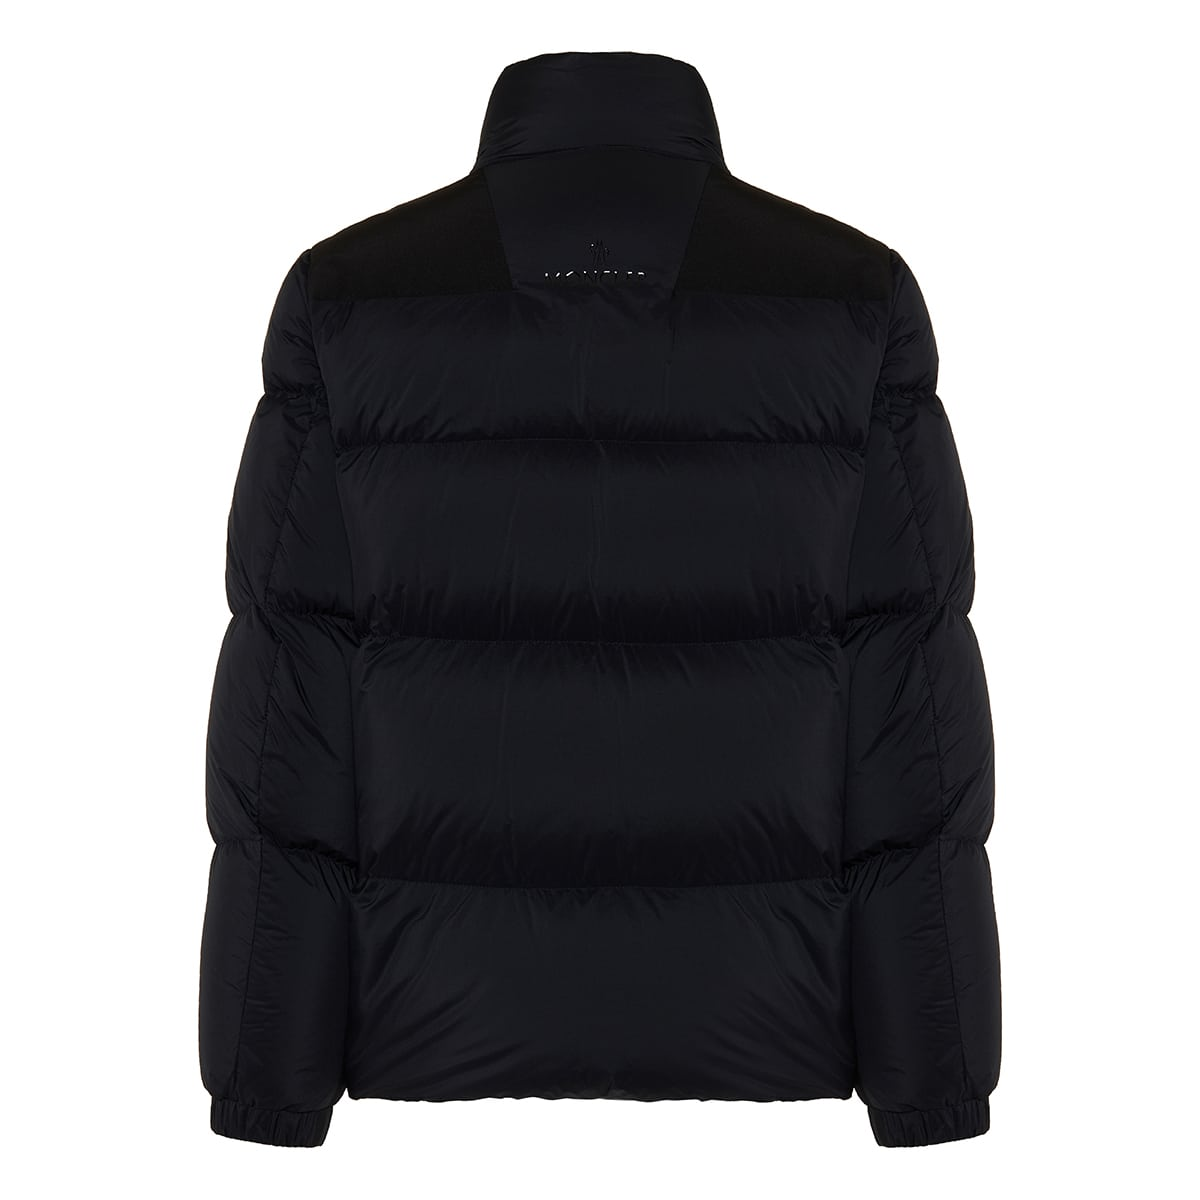 Timsit quilted puffer jacket